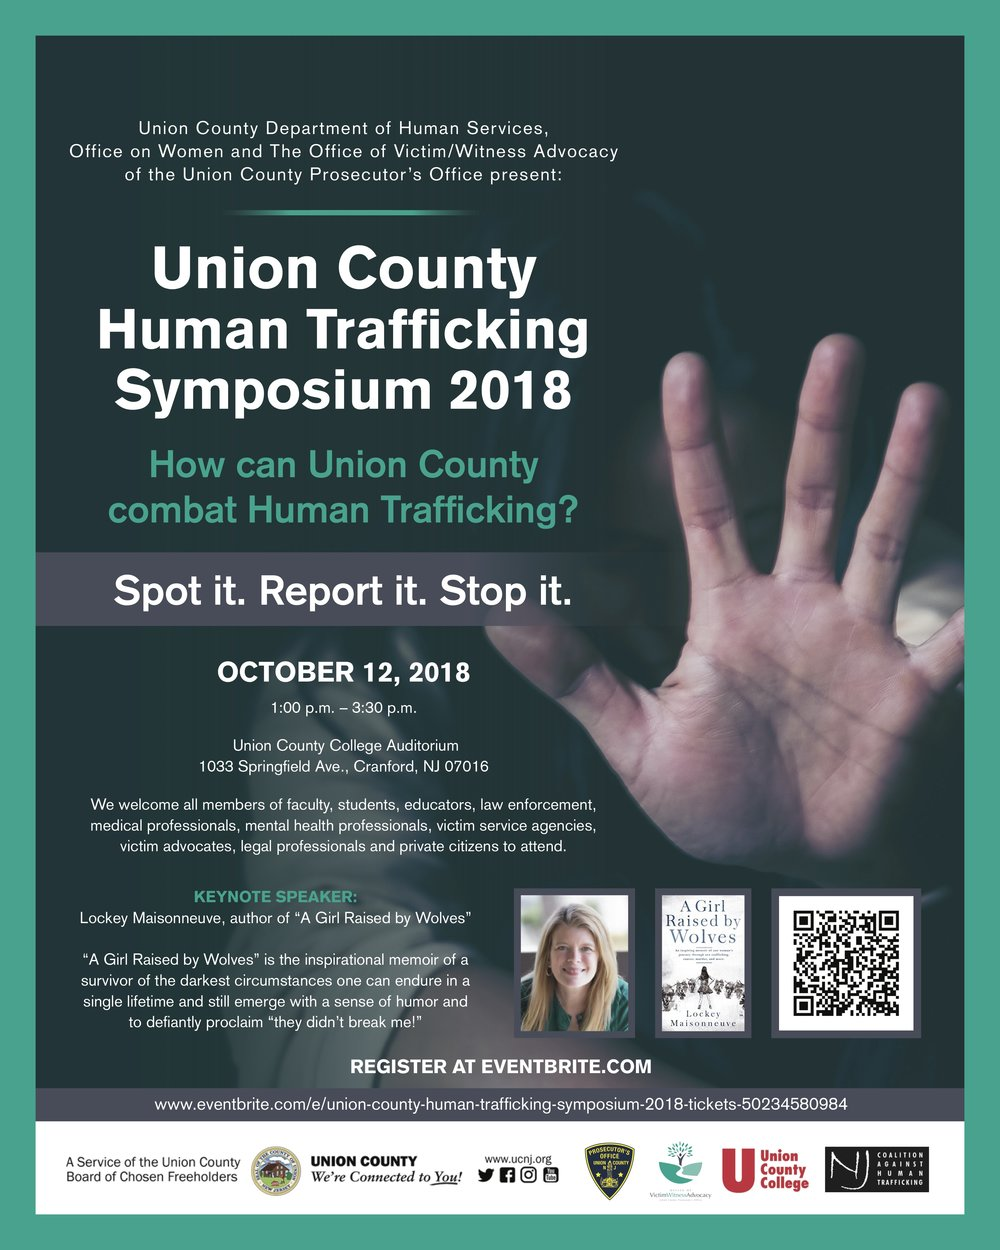 Union County Human Trafficking Symposium 2018.jpg